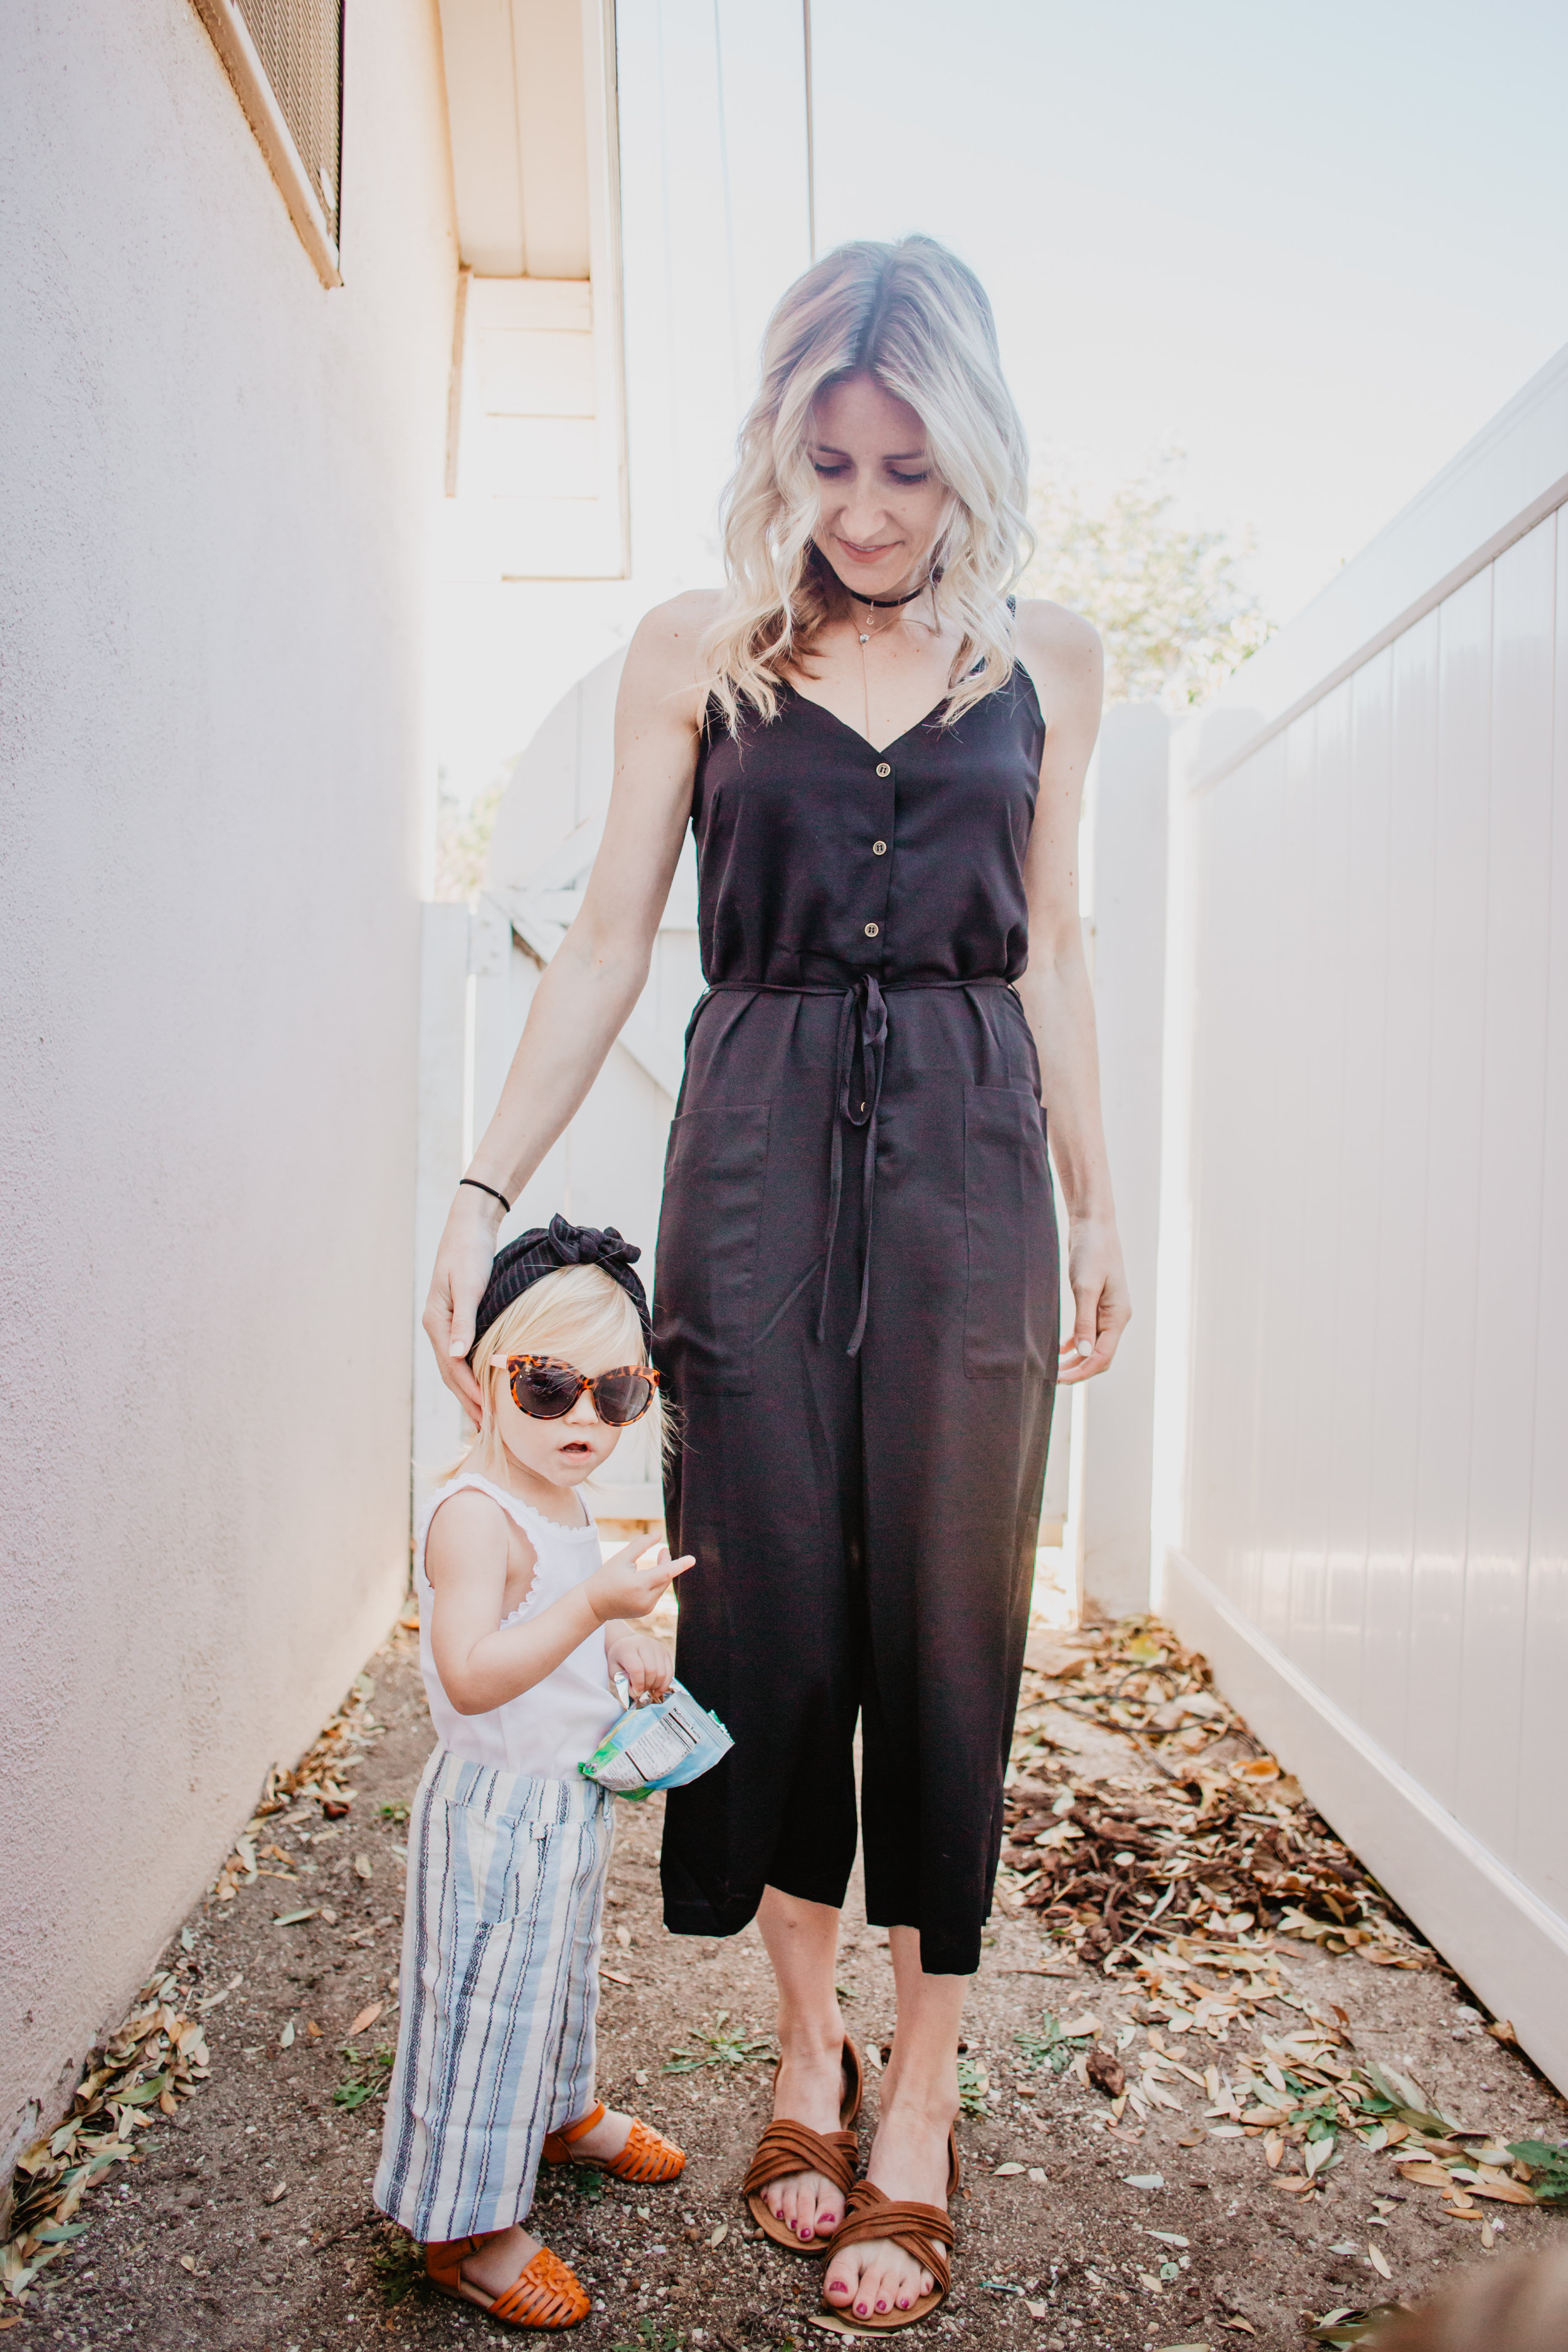 Cute Spring Kids Clothes - Kids Gaucho Pants - Black Women's Romper - The Overwhelmed Mpmmy